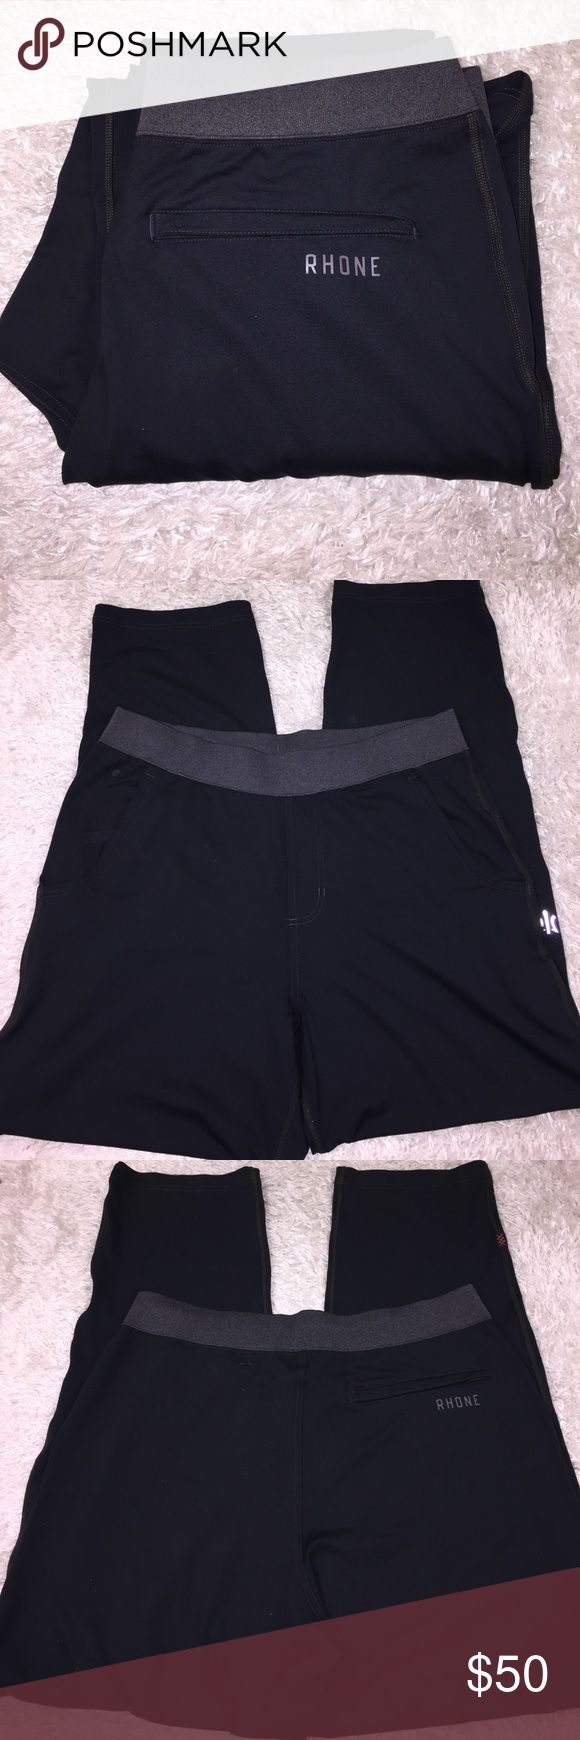 """Rhone Men's Pants Size XL. Like New! Color is black and grey. Inseam: 30 1/2"""". High quality athletic wear. Feel free to ask any questions! No trades sorry, & offers thru offer button only! 😊... Rhone Pants Sweatpants & Joggers"""